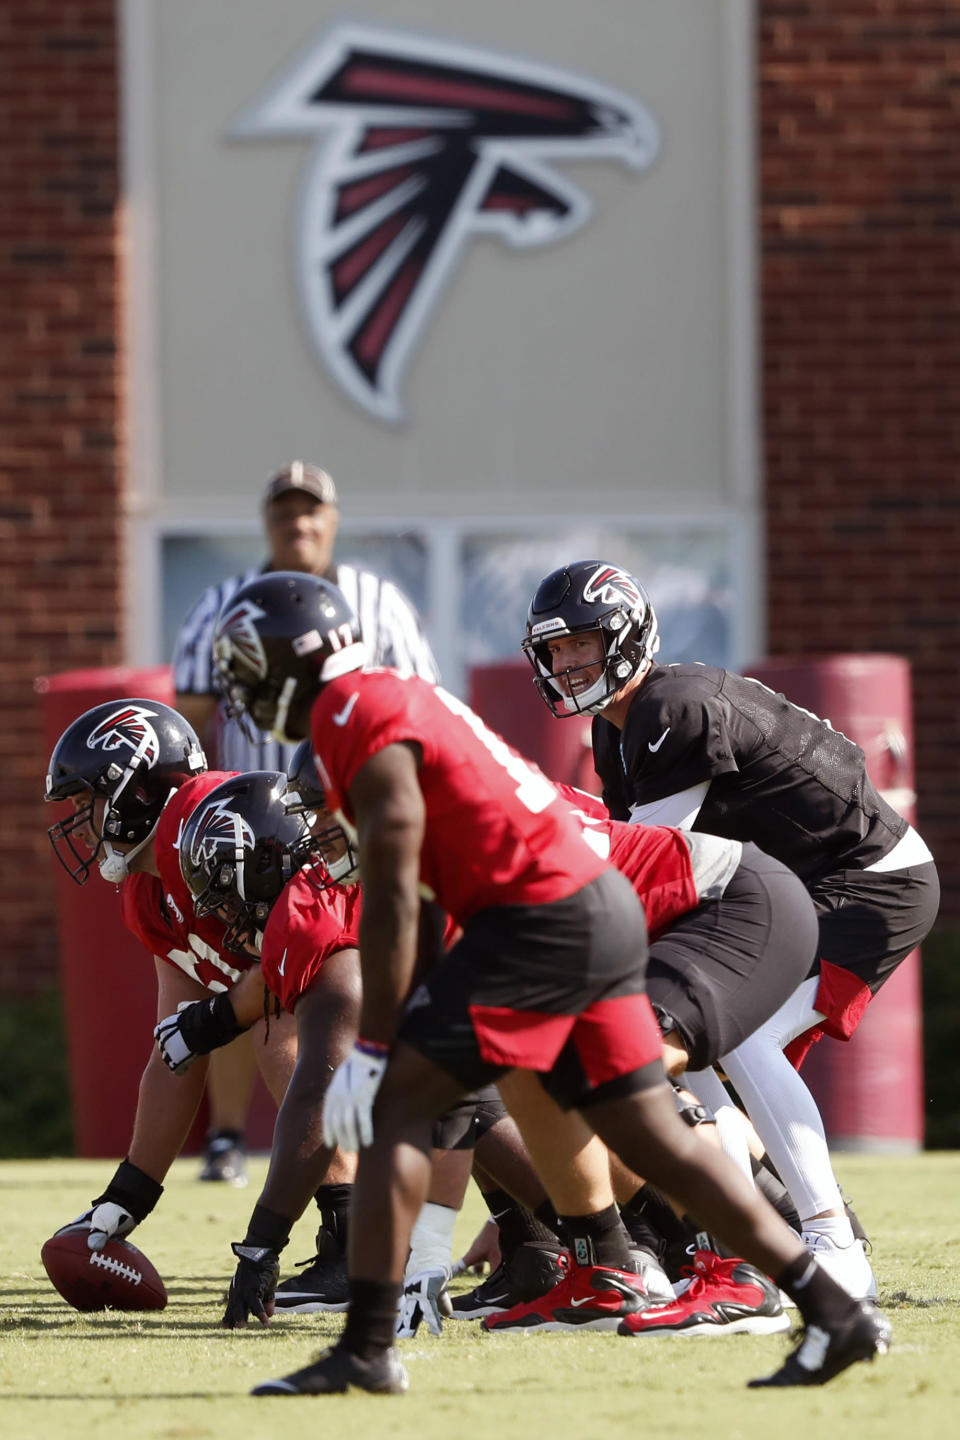 FILE - In this July 25, 2019, file photo, Atlanta Falcons quarterback Matt Ryan (2) and the offense prepare to run a play during their NFL training camp football practice in Flowery Branch, Ga. Several NFL teams are reopening their training facilities Tuesday, May 19, 2020, while many are prohibited by government restrictions during the coronavirus pandemic. Among the teams taking advantage of using their buildings on the first day they are allowed are the Falcons, Cardinals and Colts. (AP Photo/John Bazemore, File)